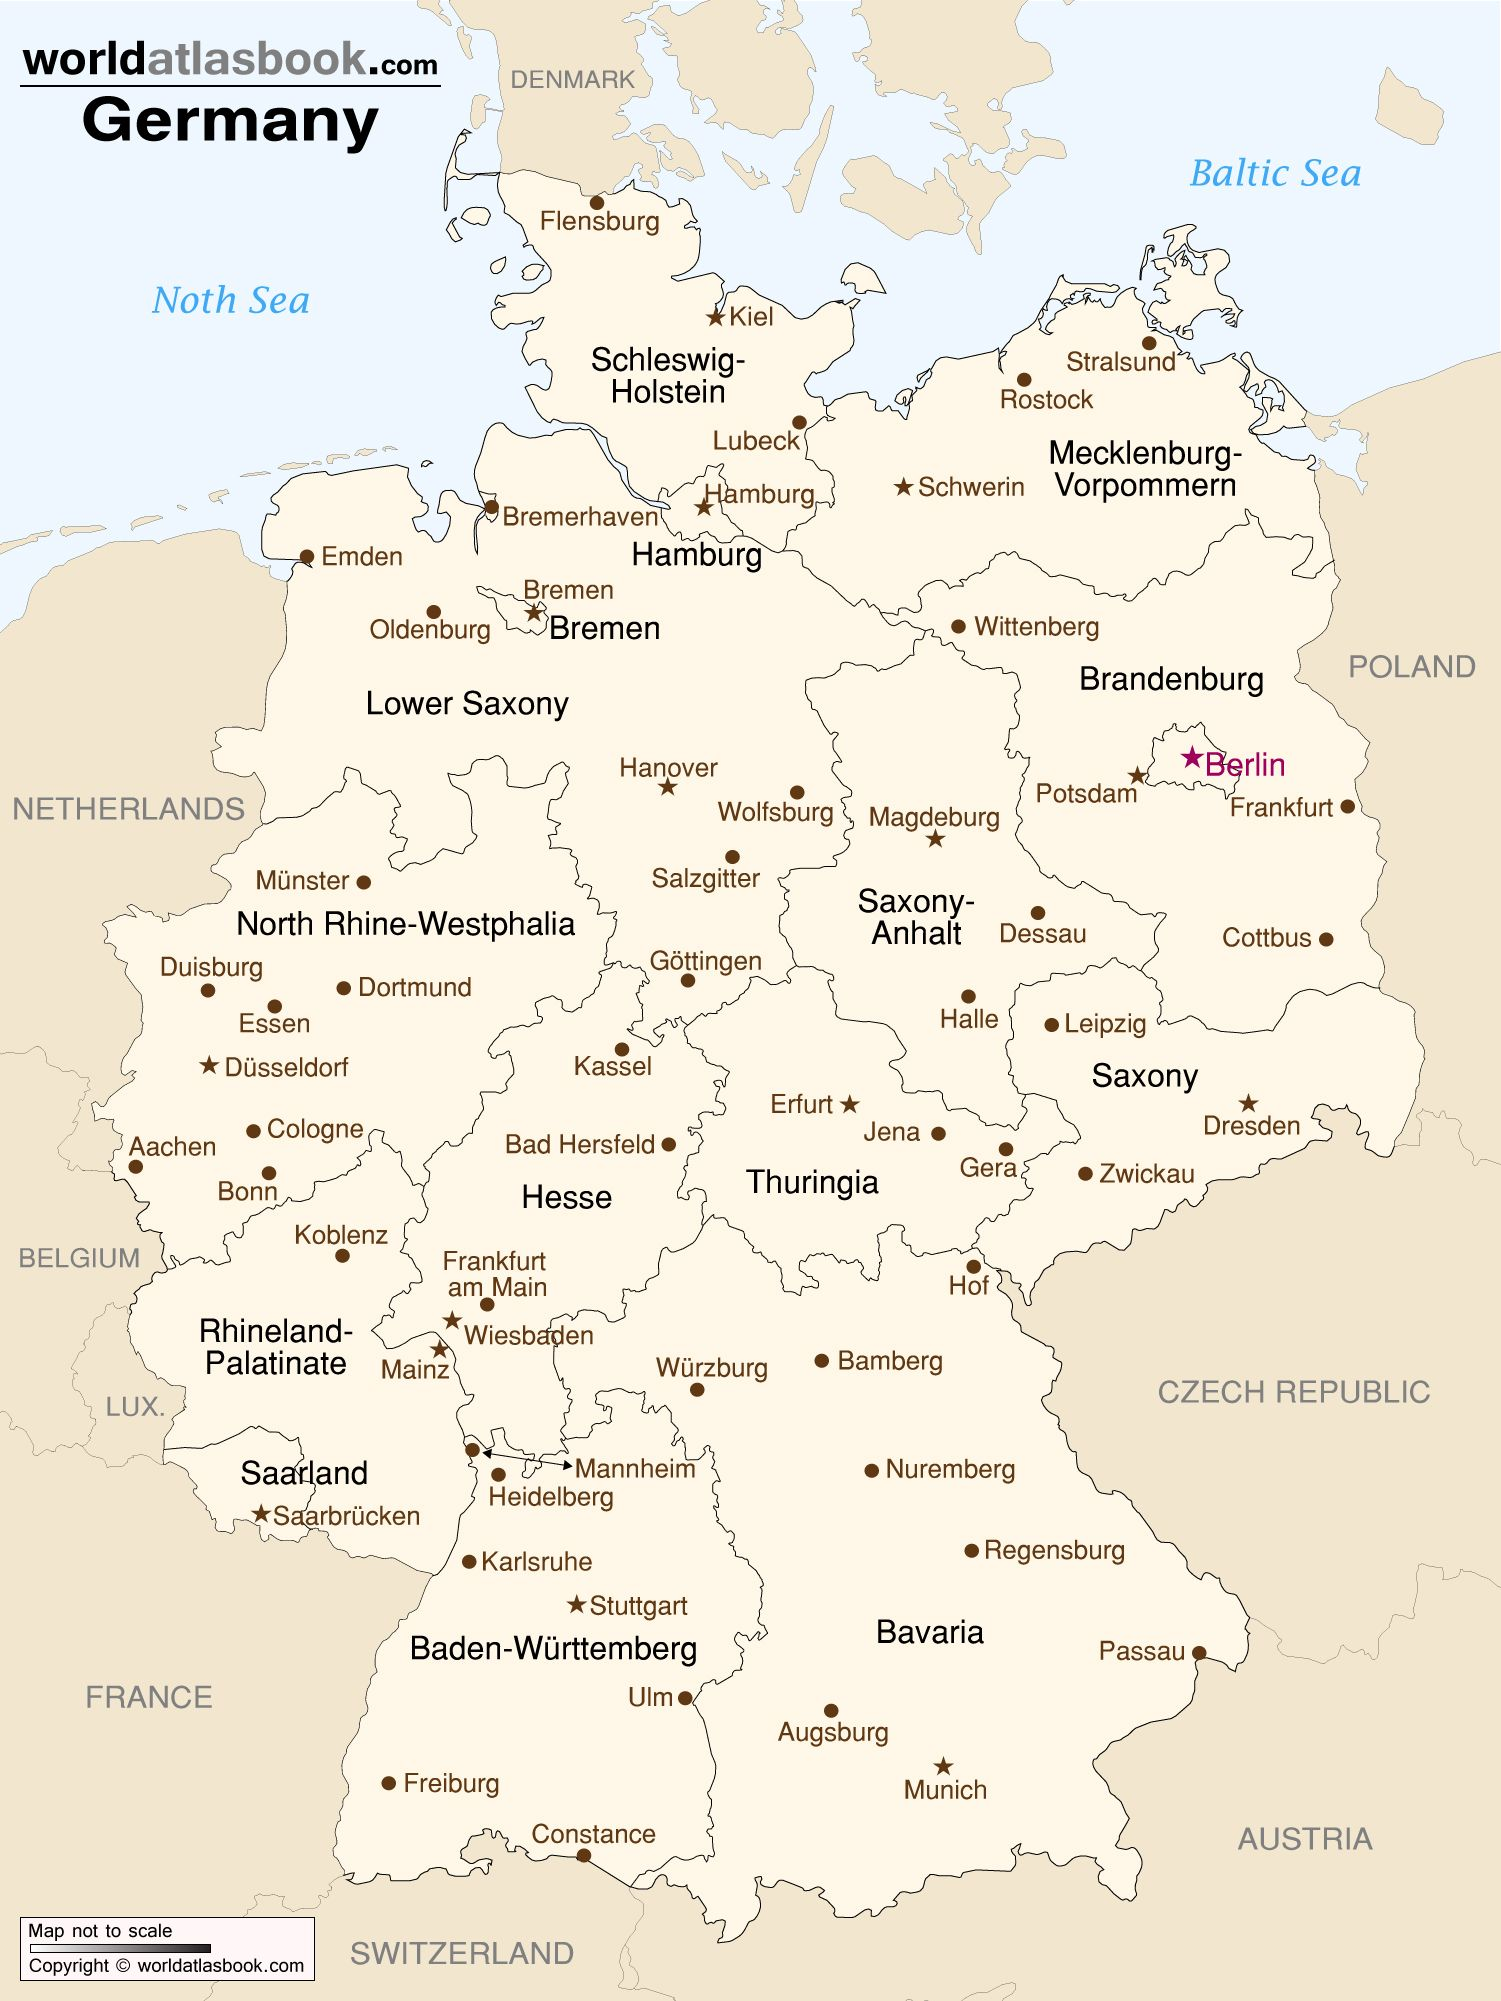 Printable Map Of Germany.Map Of Germany With States And Cities Germany Map Germany